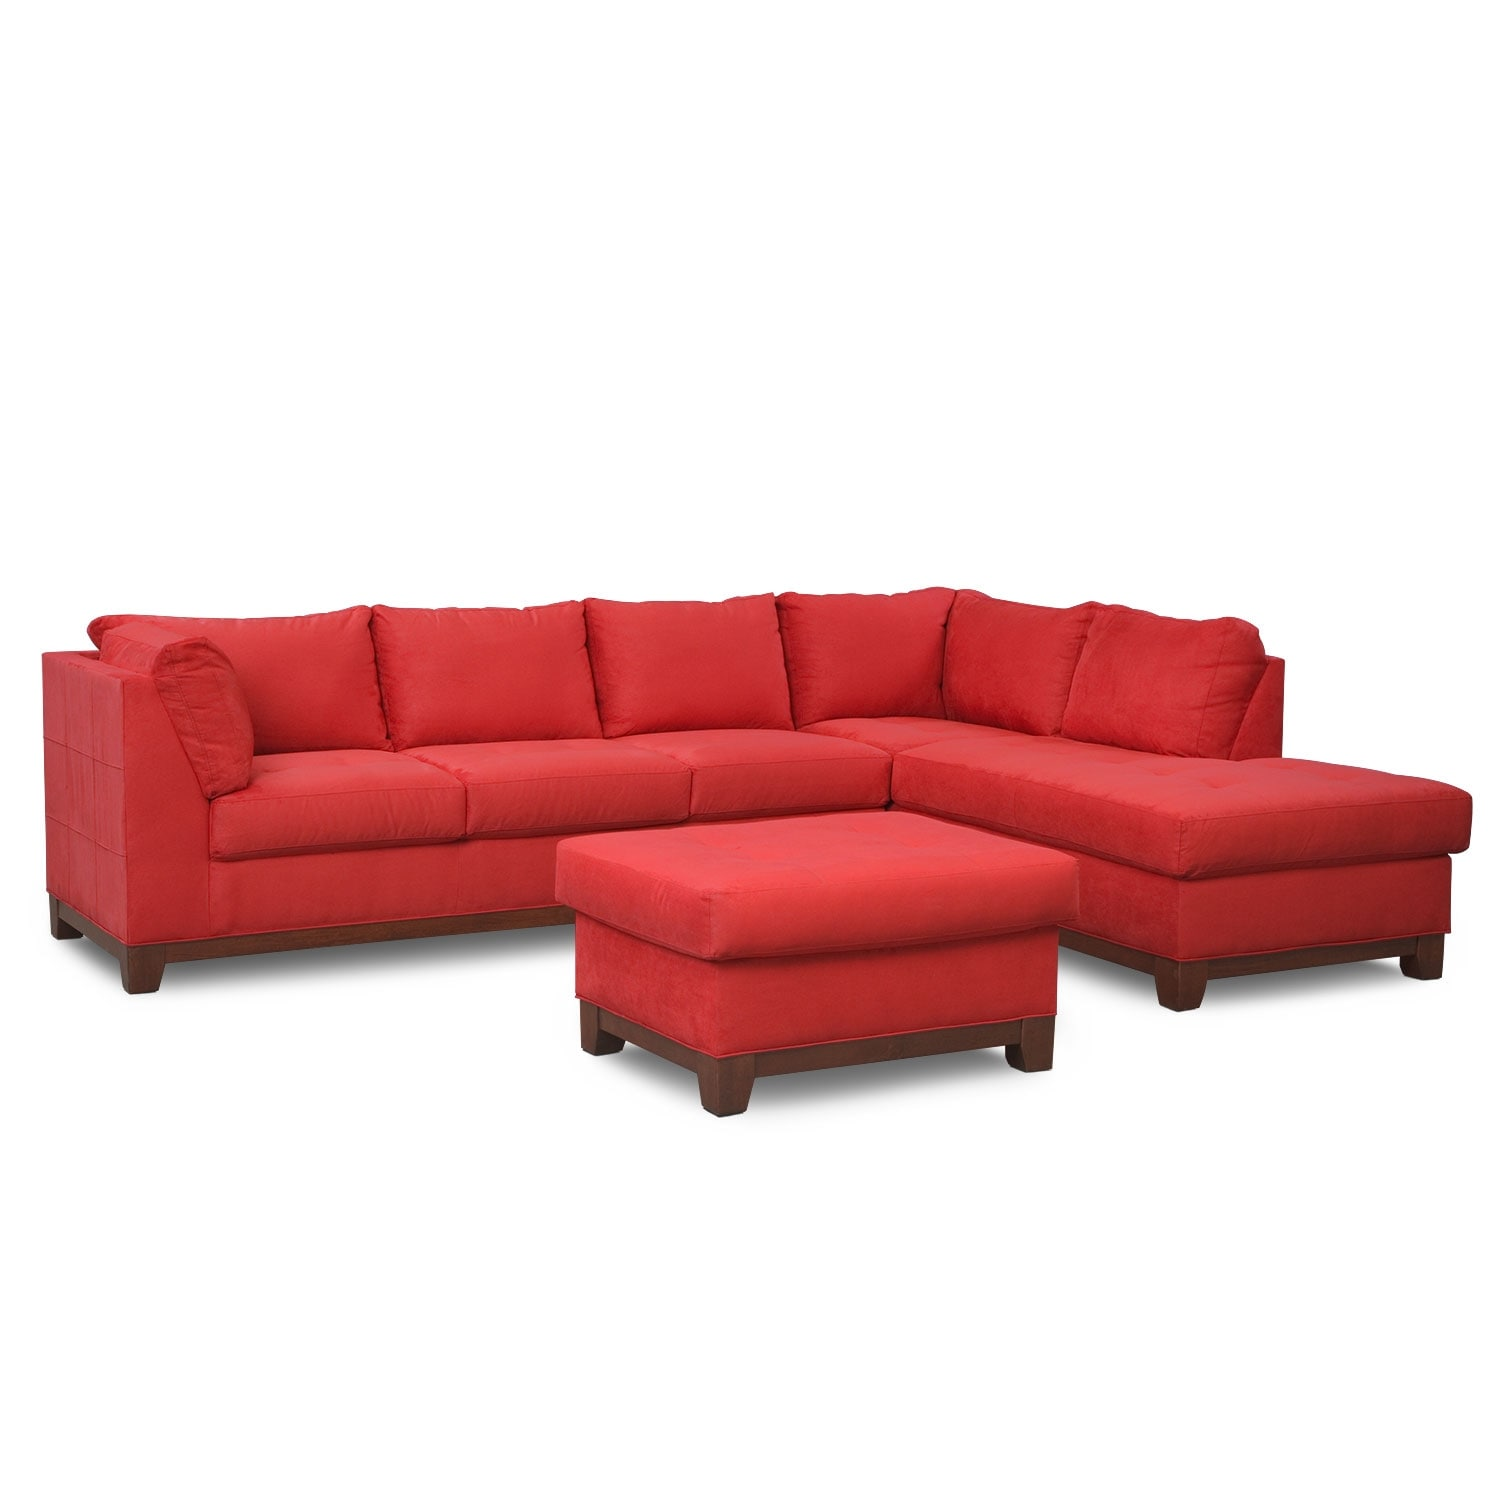 Soho 2-Piece Sectional with Right-Facing Chaise and Ottoman - Red